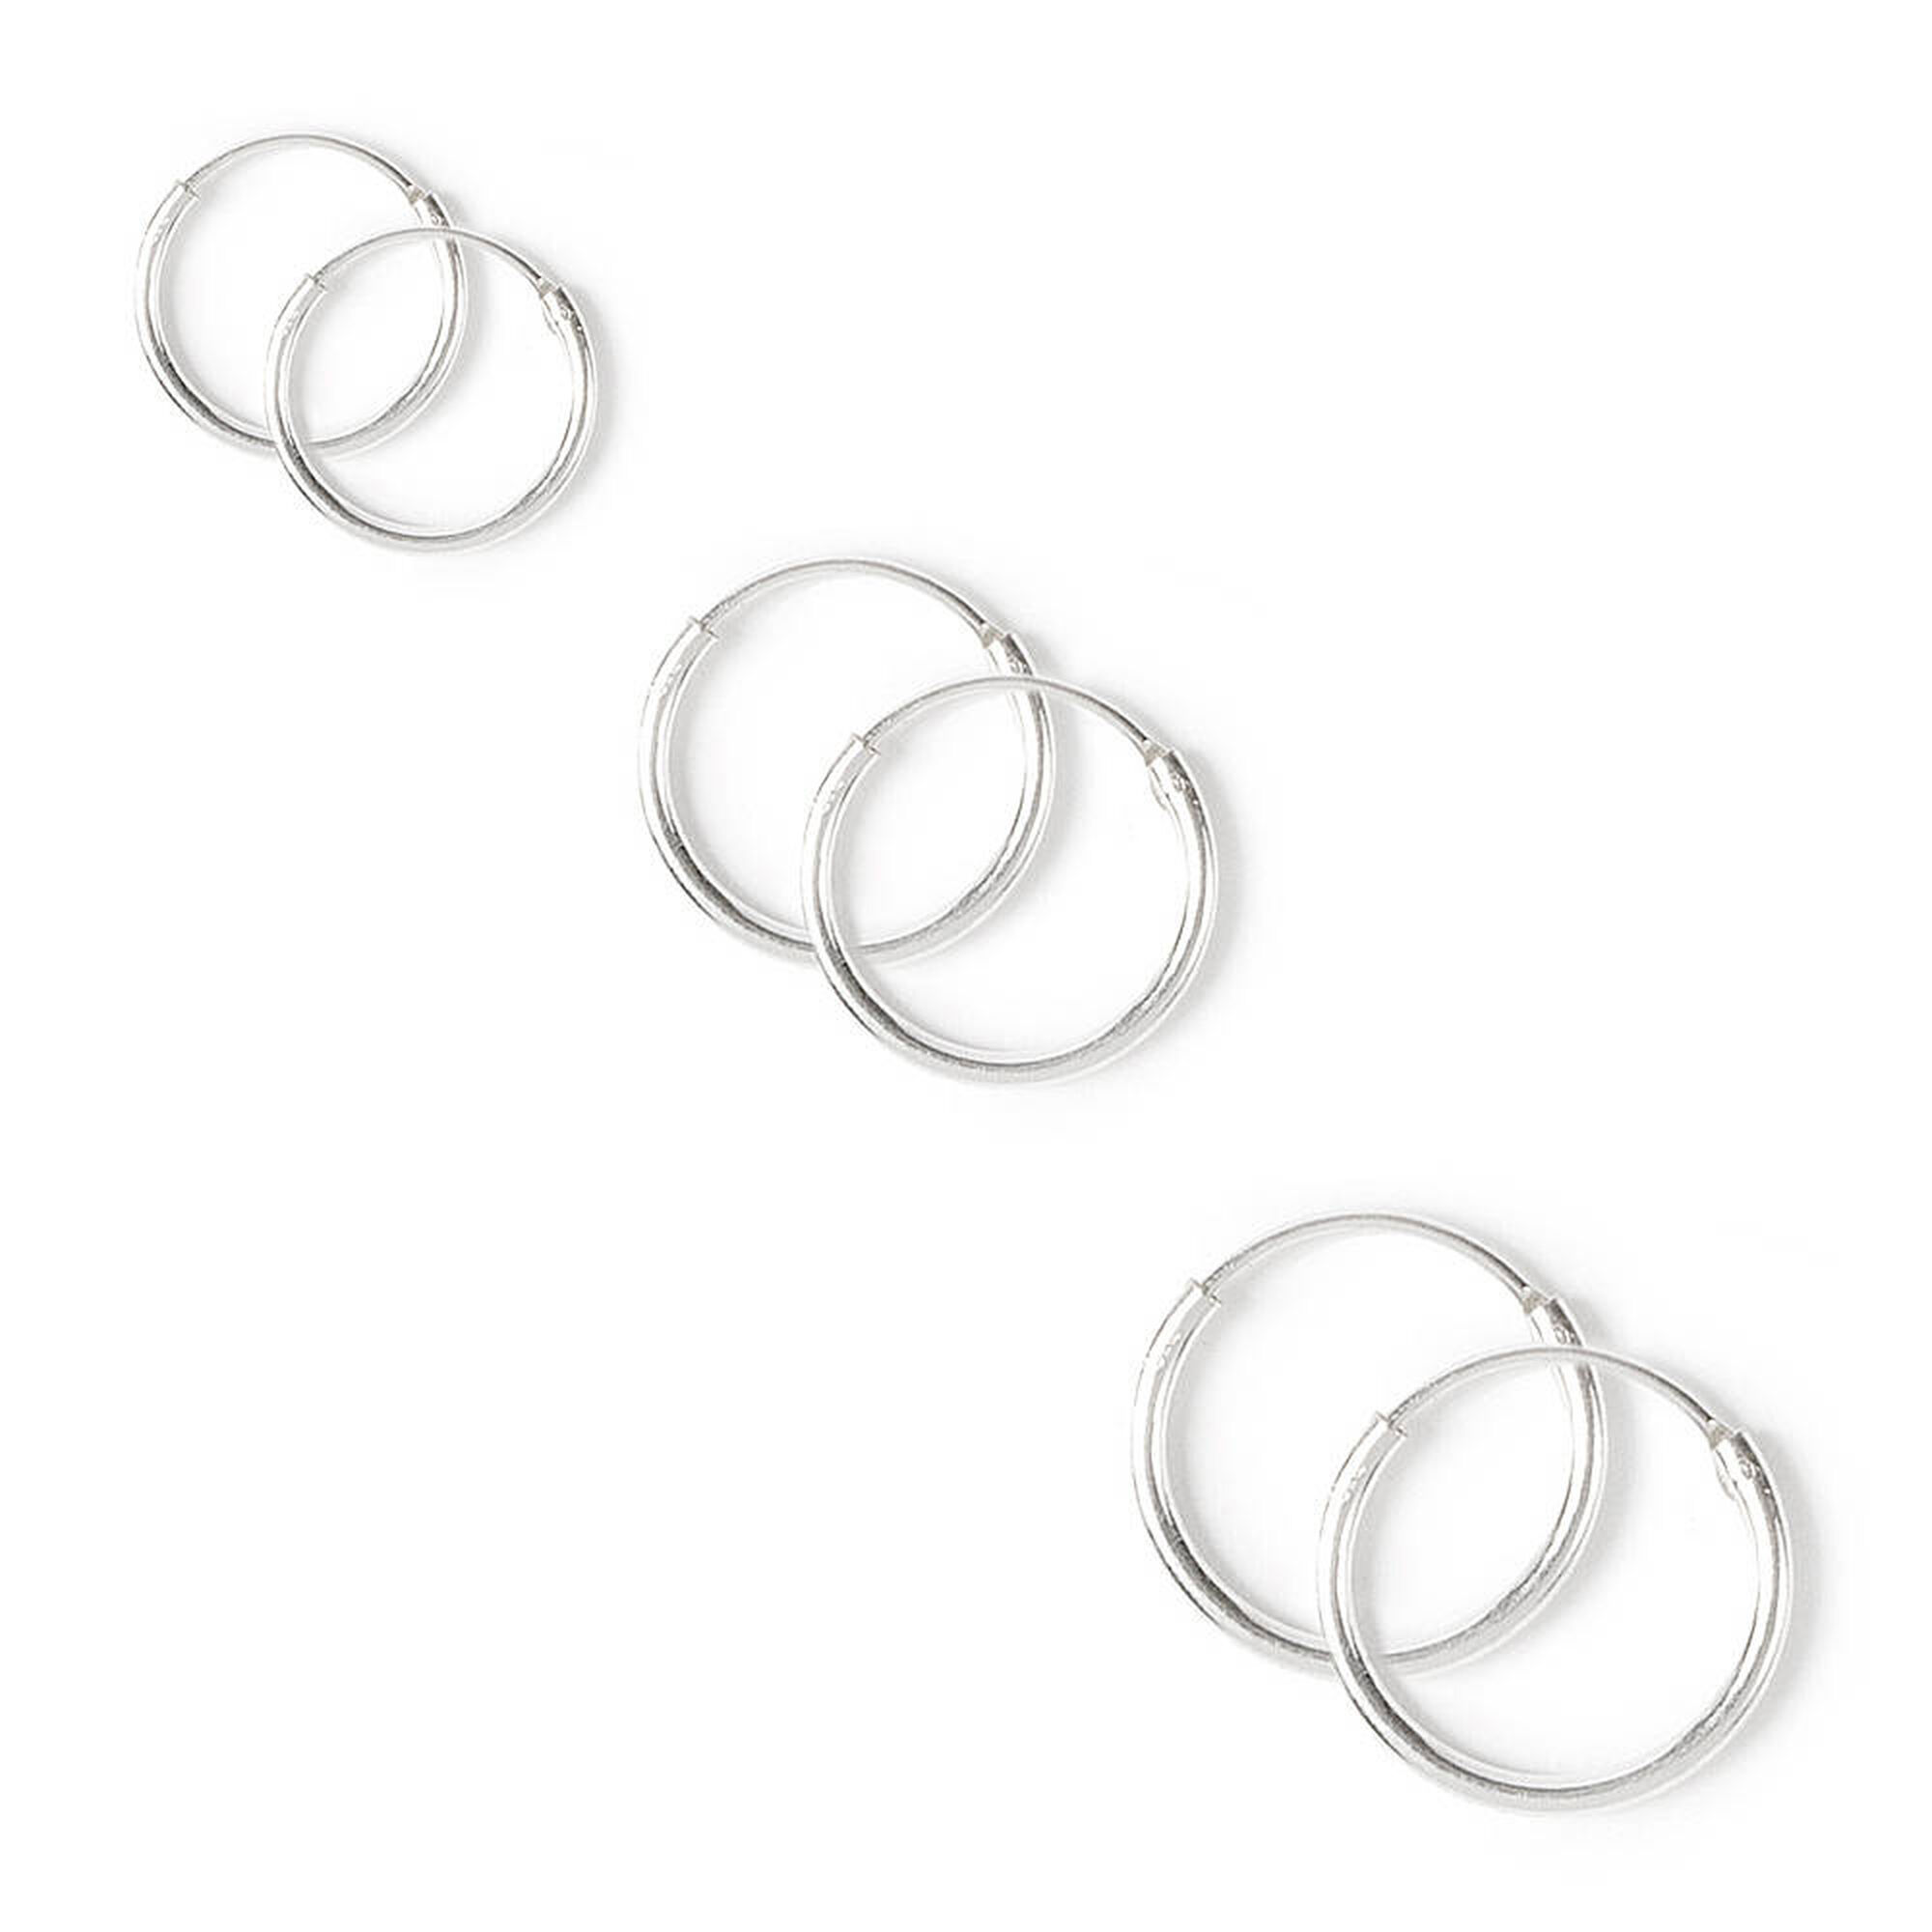 10 12 14mm Sterling Silver Endless Hoop Earrings